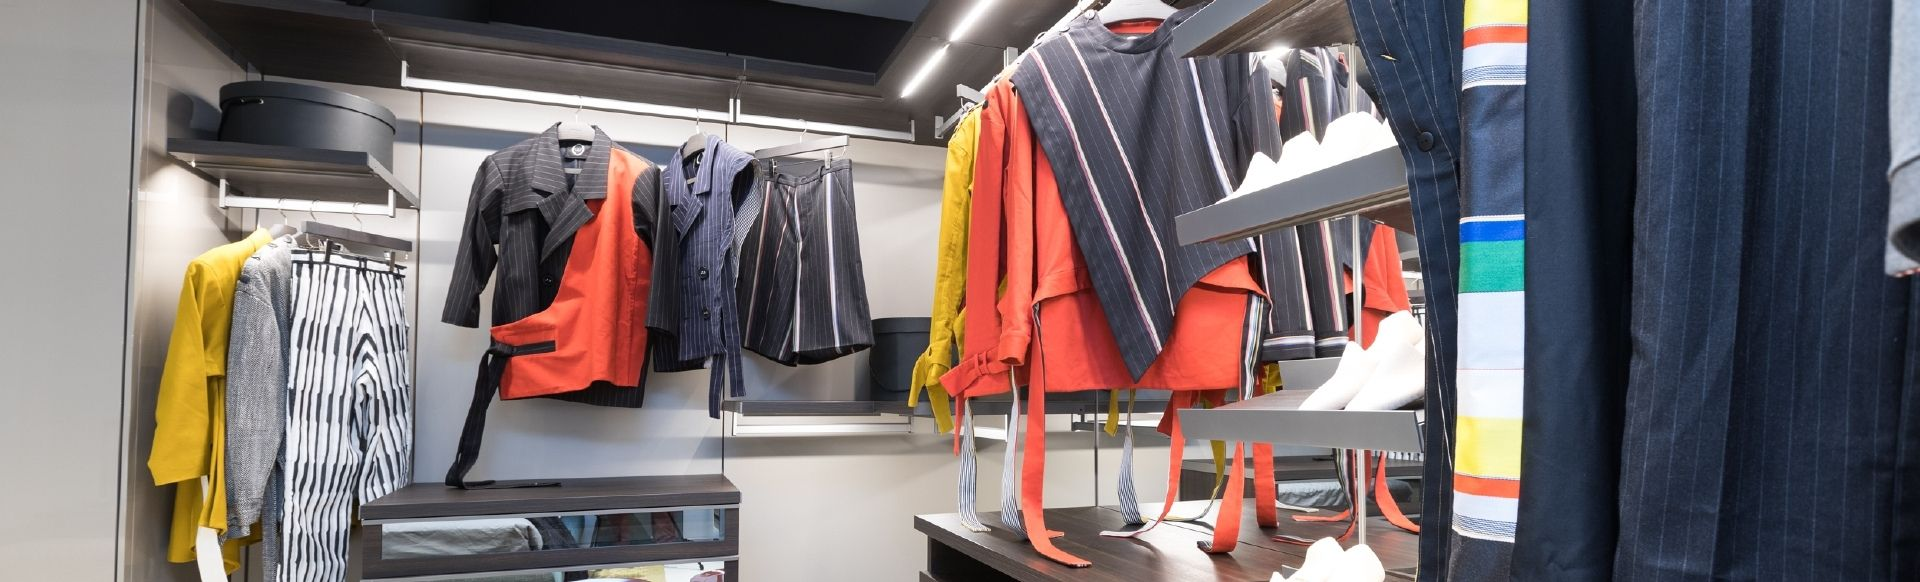 Orange, yellow, black and white clothes presented hanging in a wardrobe in Istituto Marangoni.